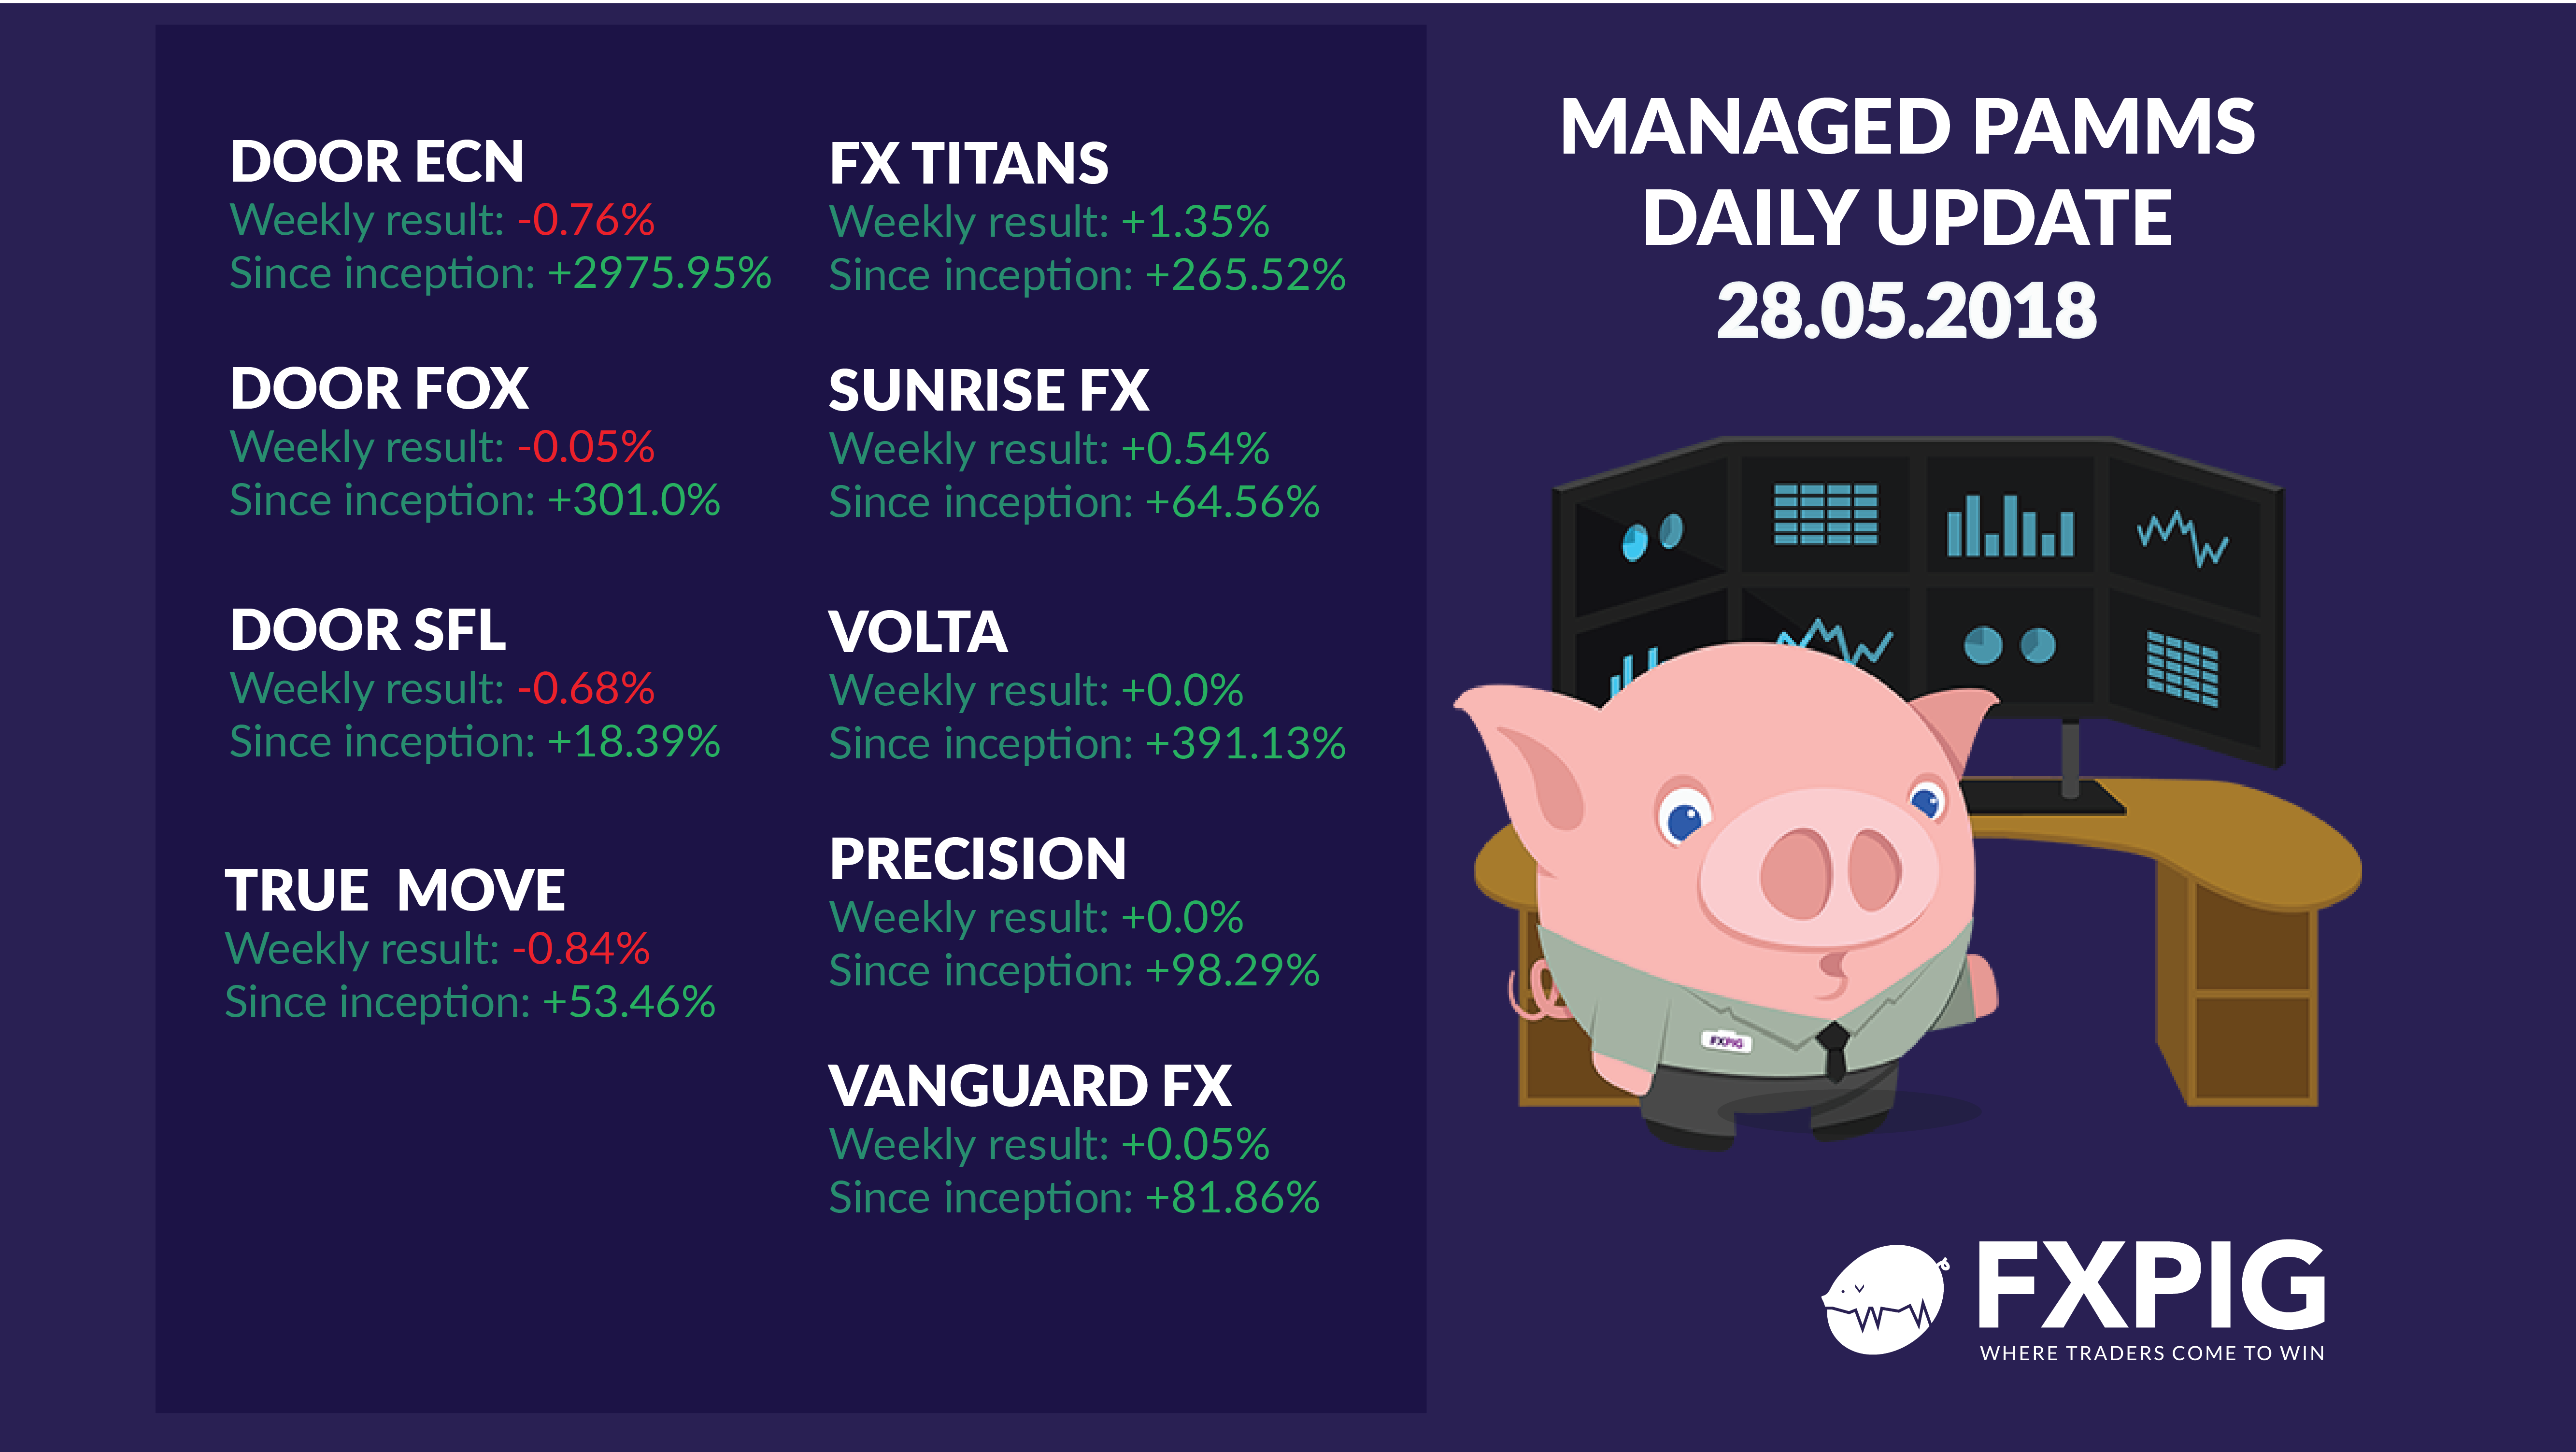 FOREX_managed-accounts-daily2805_FXPIG